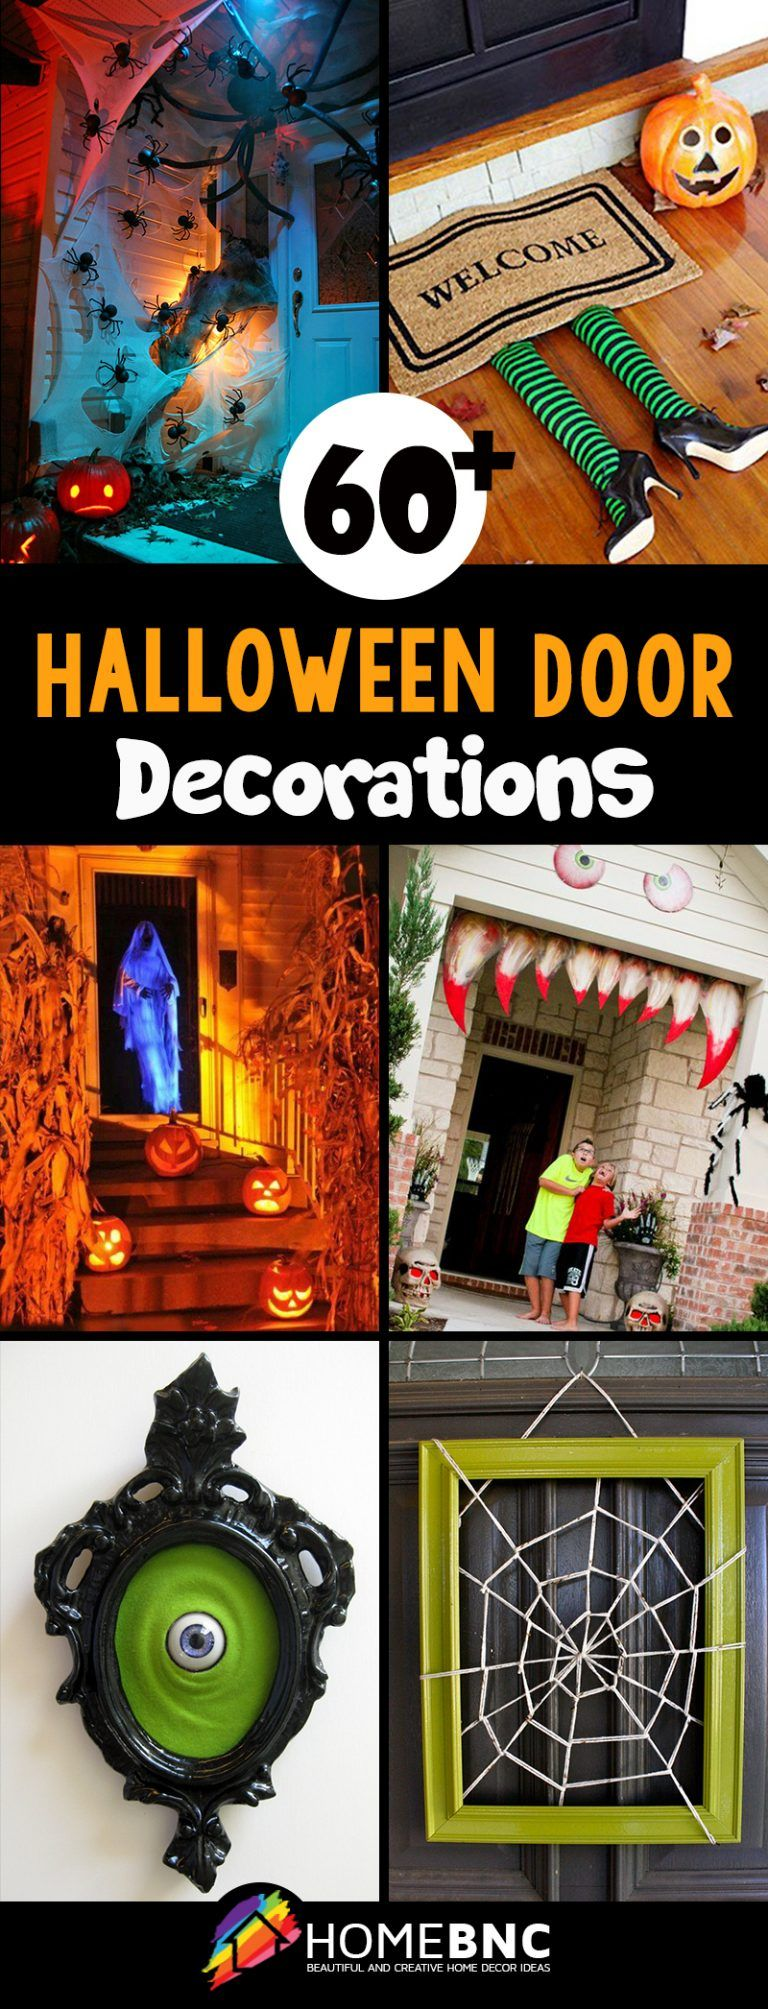 Halloween Door Decoration Ideas #halloweendoordecorations